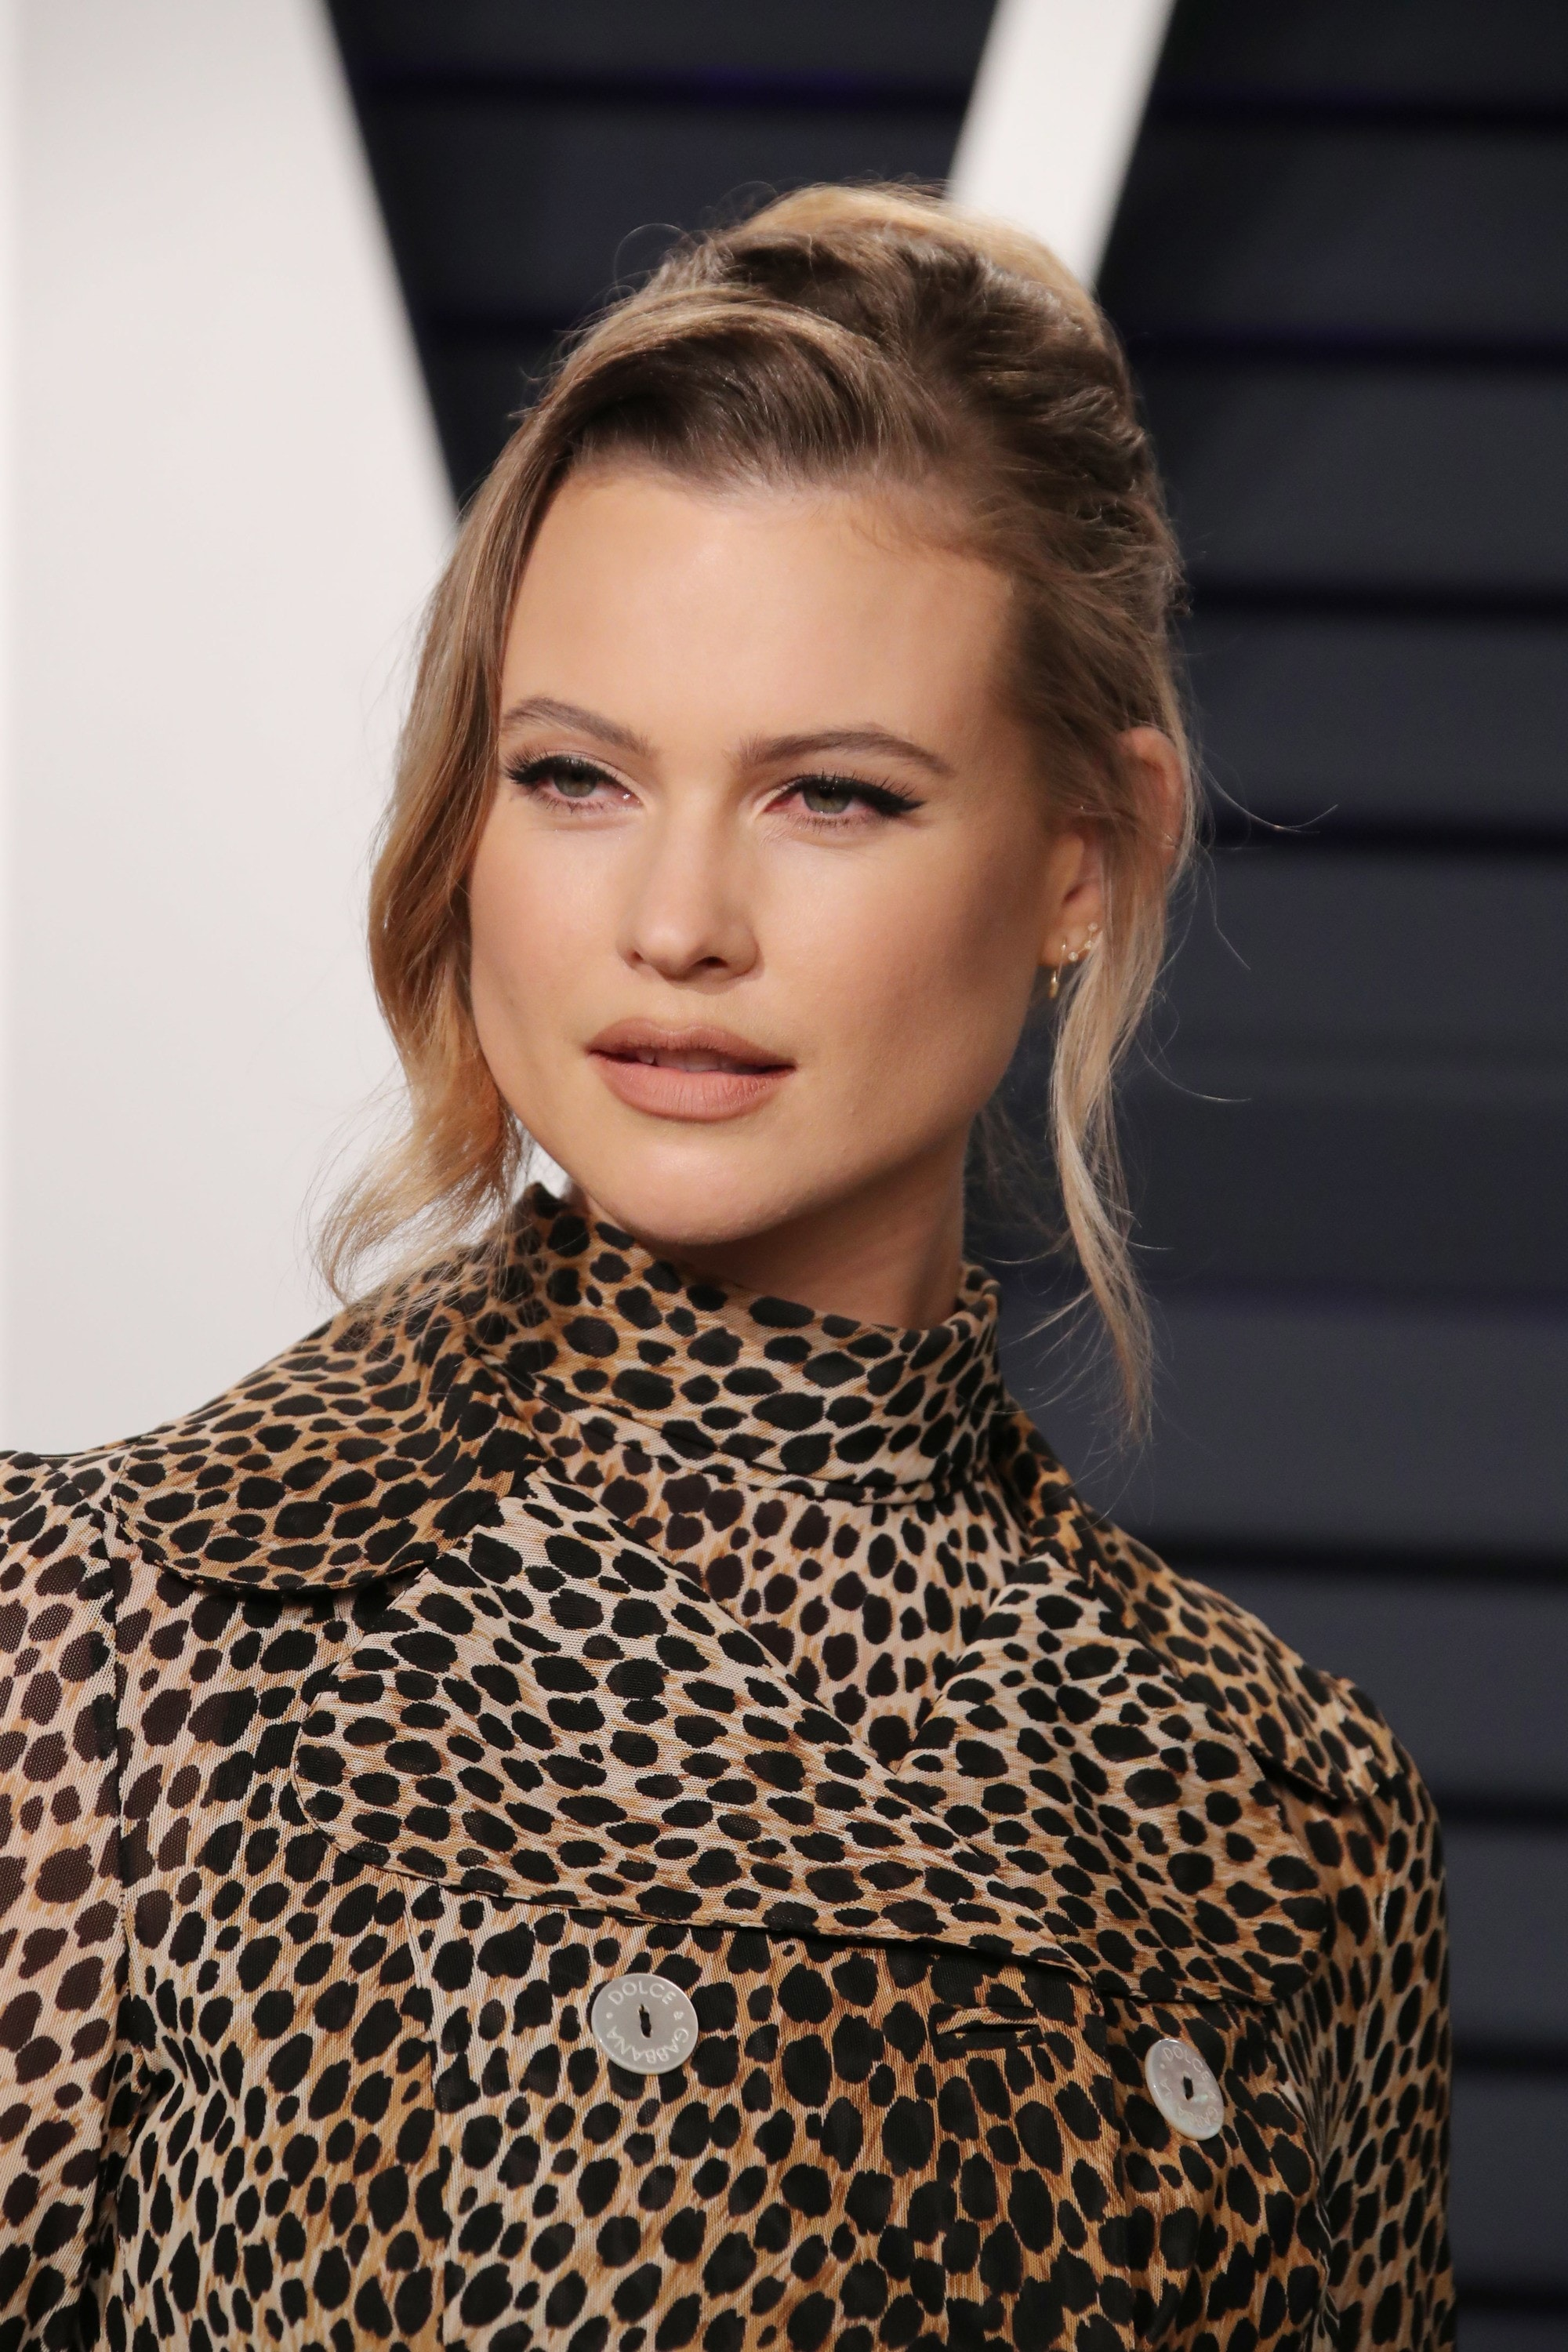 Behati Prinsloo with her ashy caramel blonde hair styled into a romantic updo, wearing leopard print on the red carpet